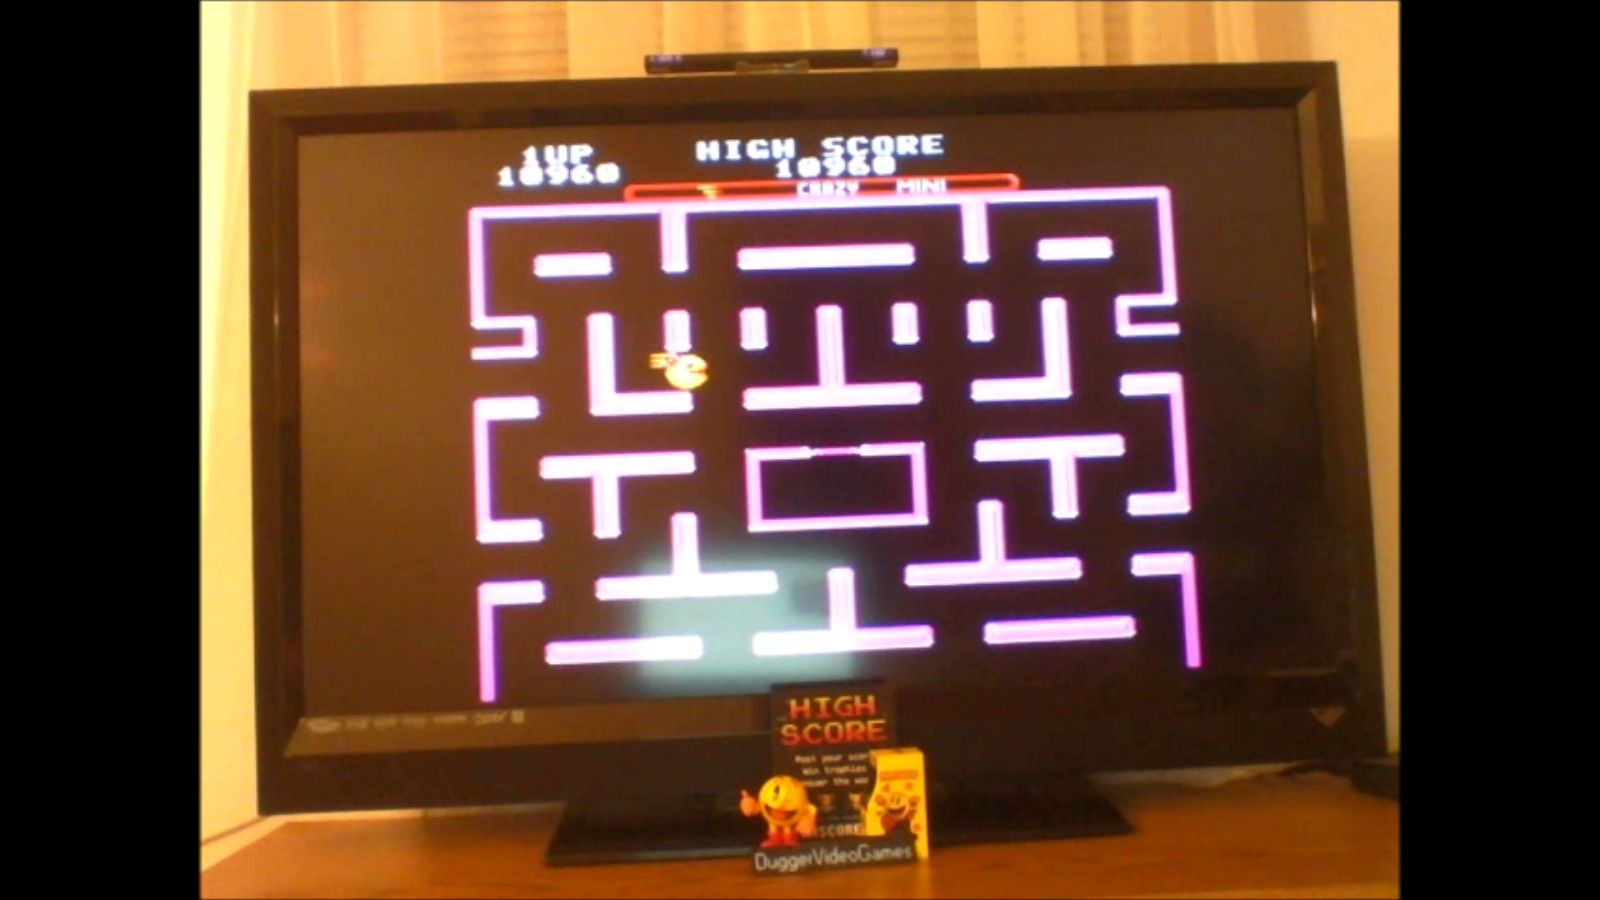 DuggerVideoGames: Ms. Pac-Man [On/ Crazy/ Mini/ Level 1 Start] (SNES/Super Famicom Emulated) 10,960 points on 2017-01-15 23:48:46